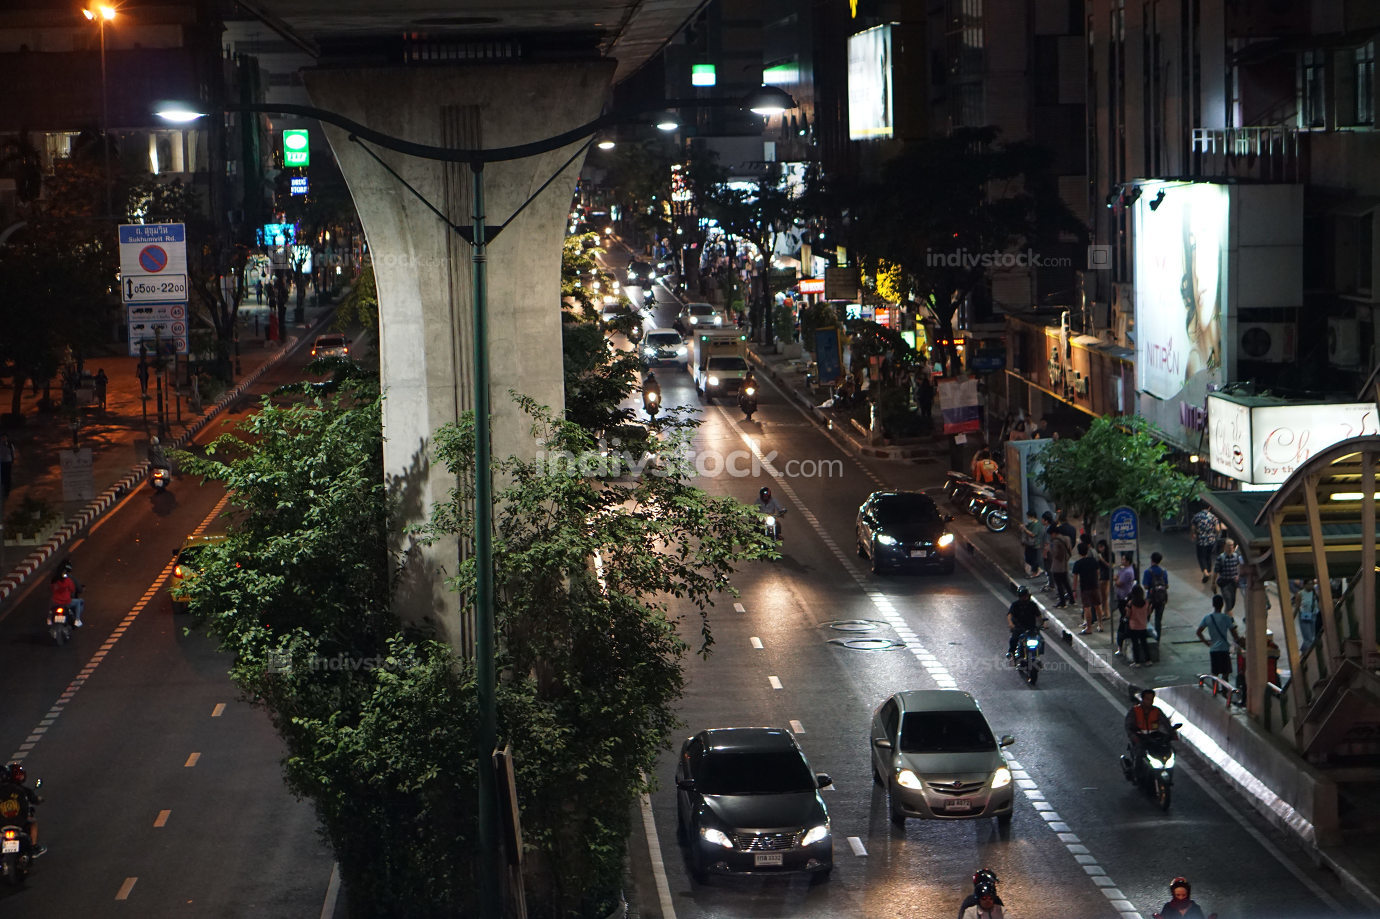 Street scene with cars and at early evening in Thailand Bangkok